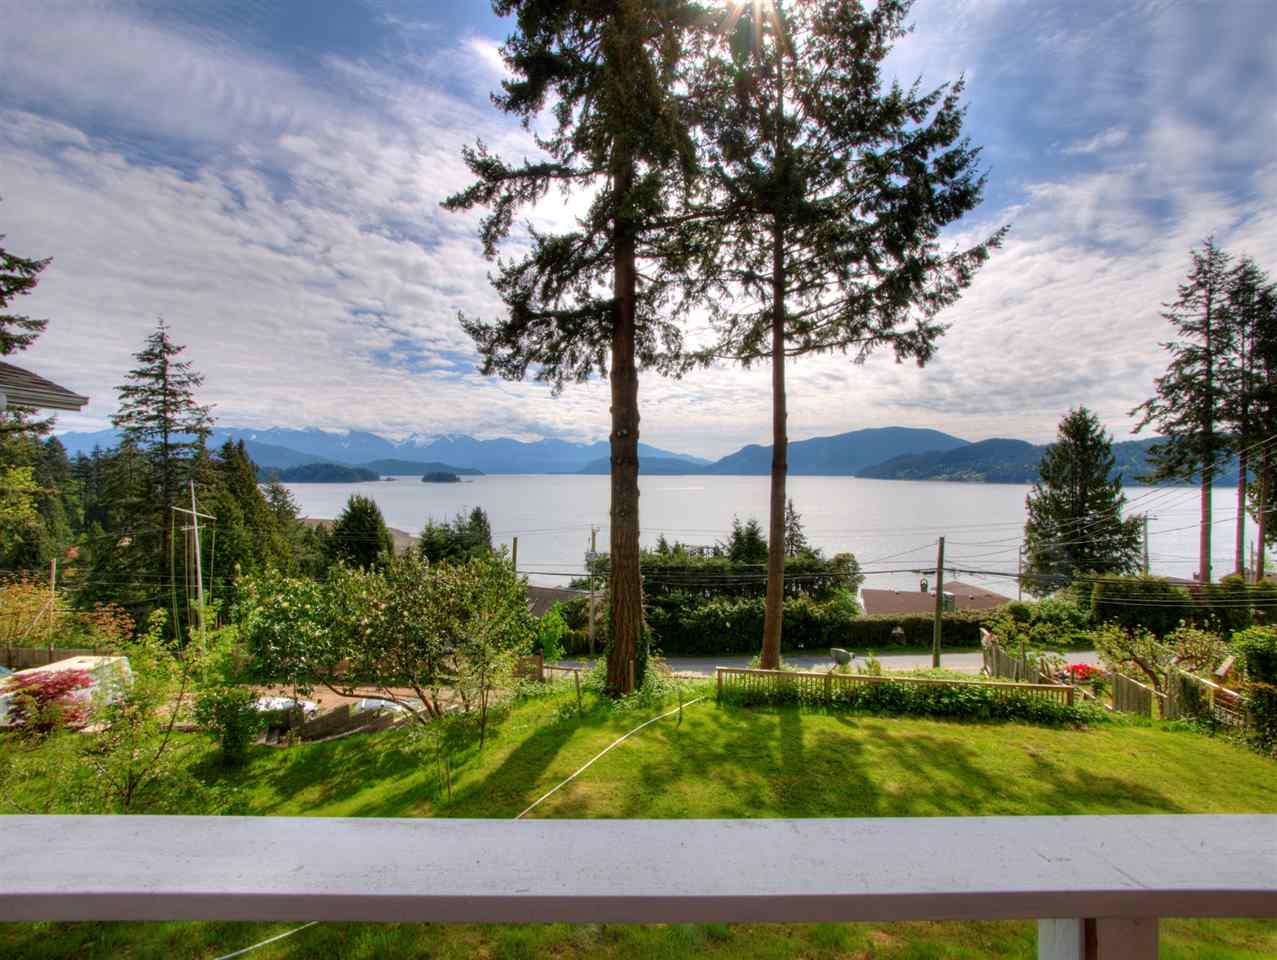 1798 NORTH ROAD, Gibsons, BC v0n 1v1